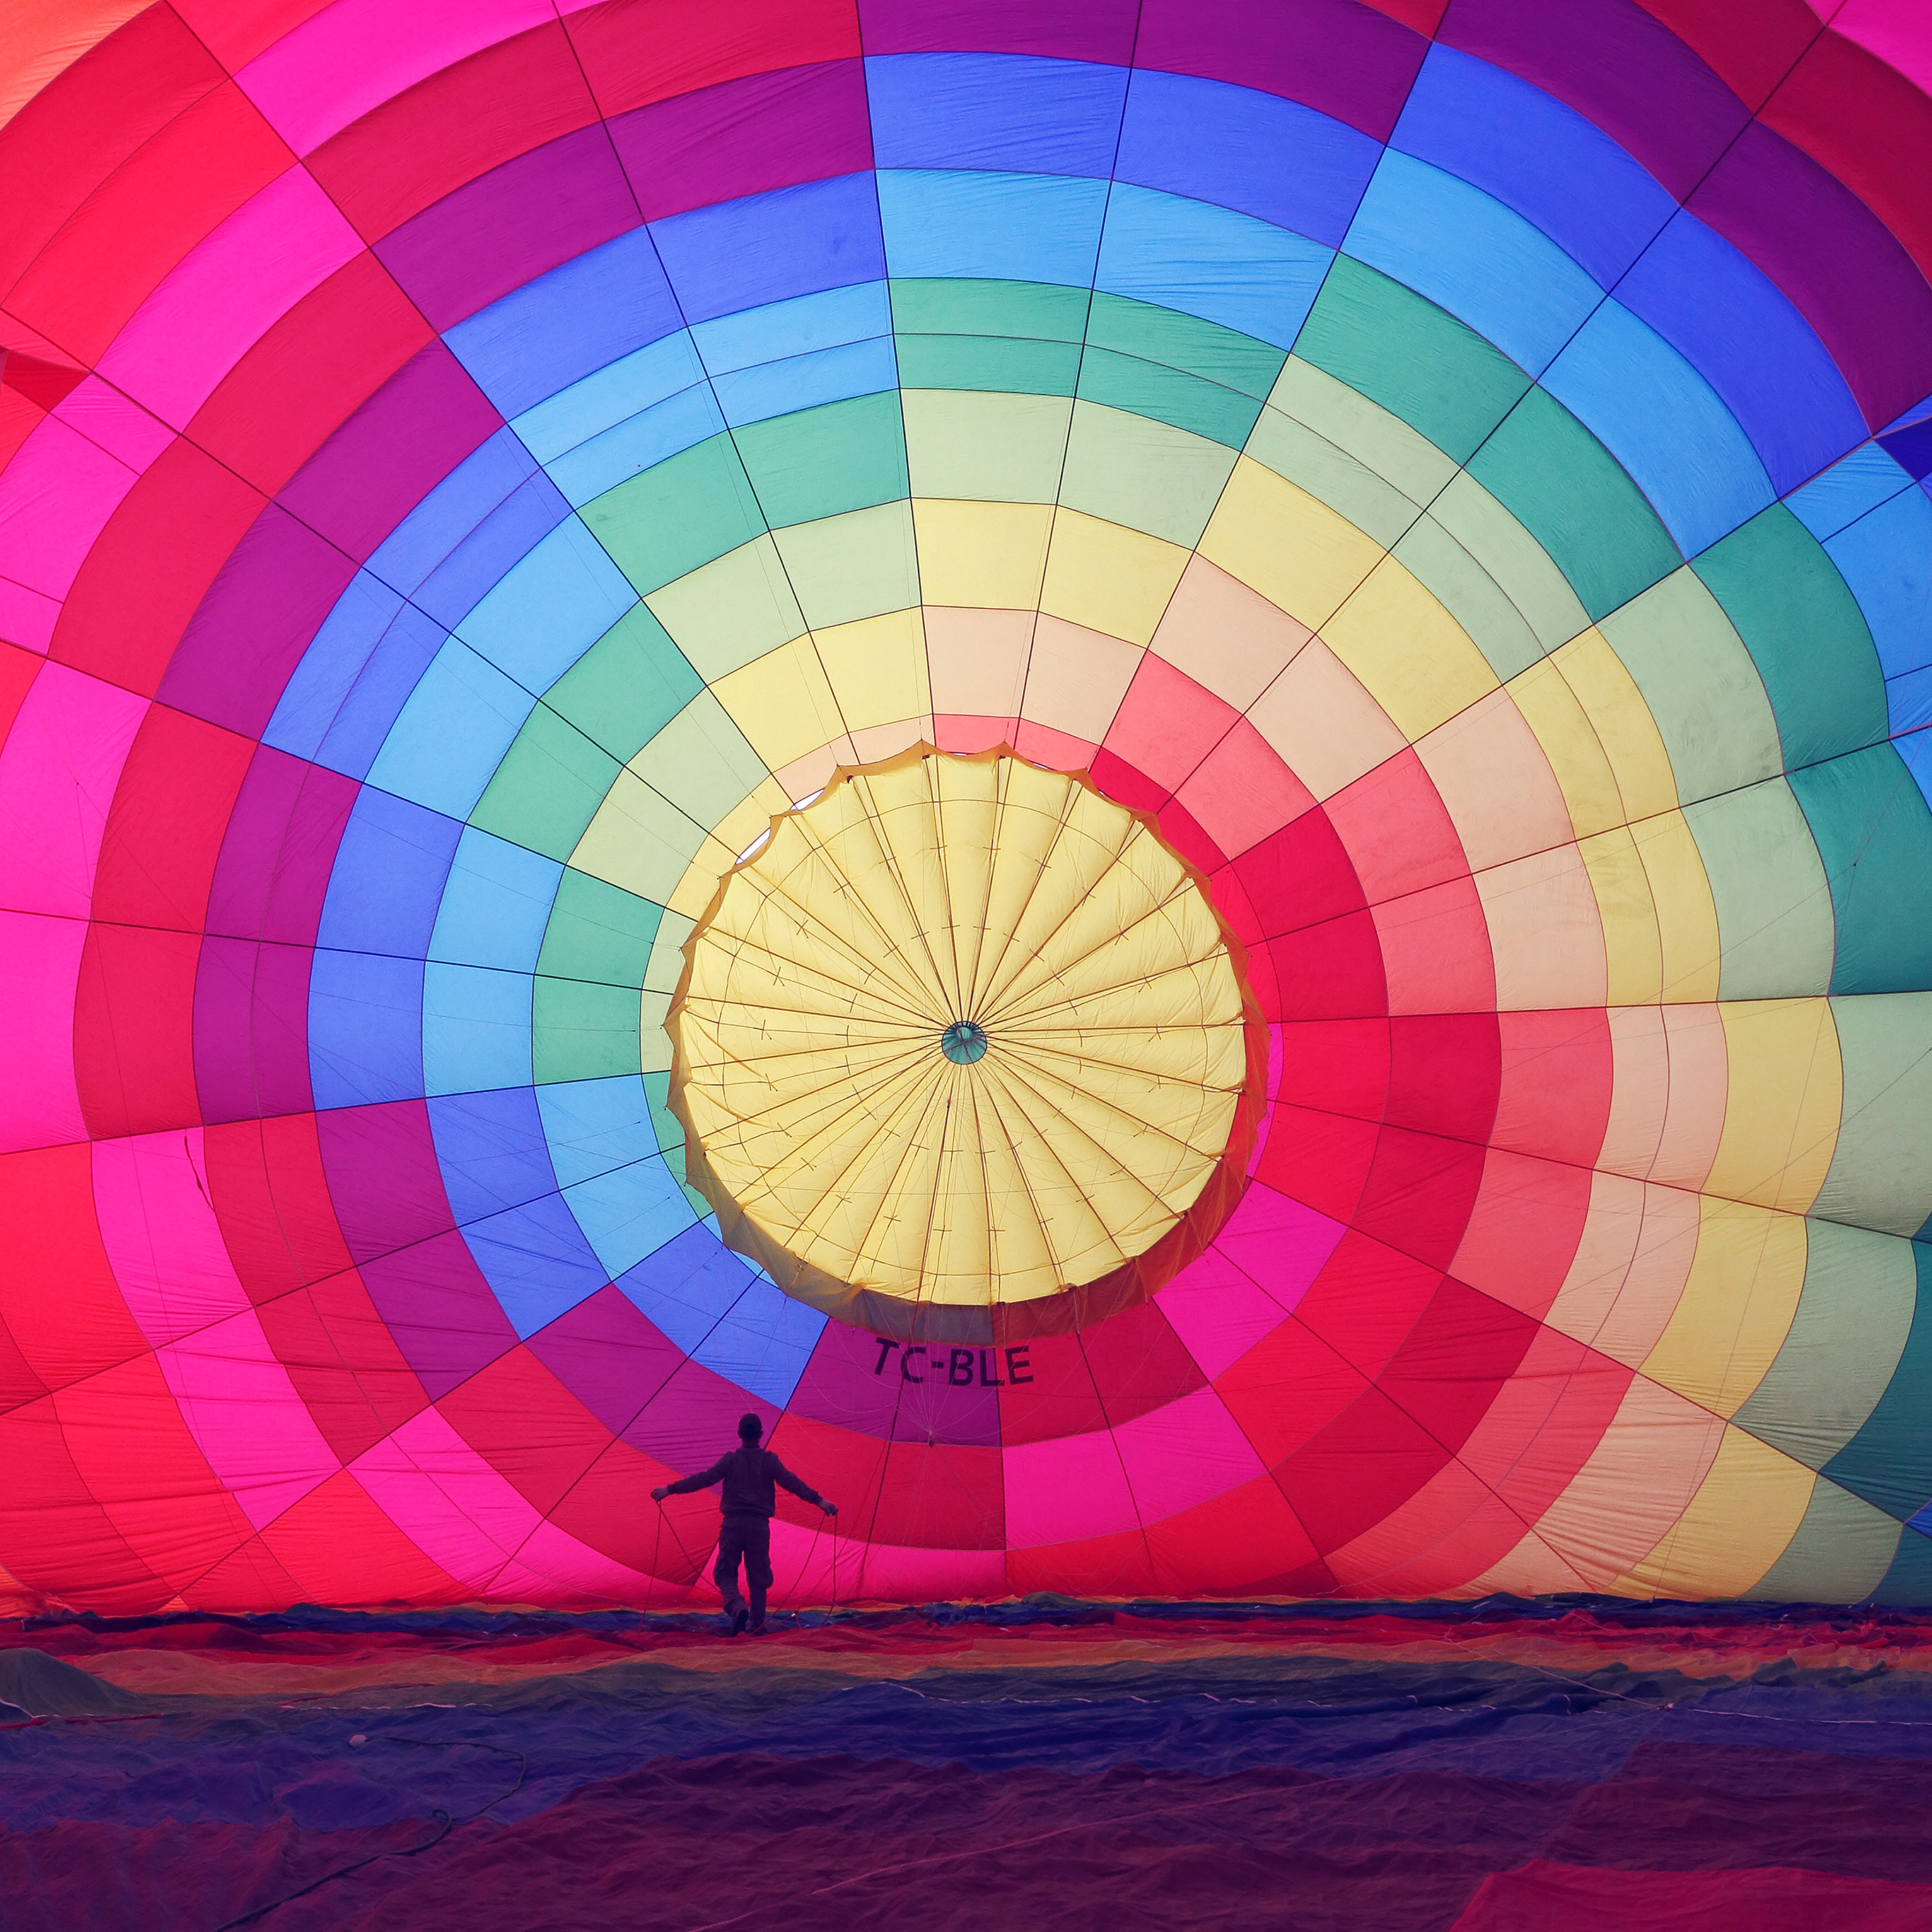 Ipapers Co Mj98 Hot Air Balloon Rainbow Nature